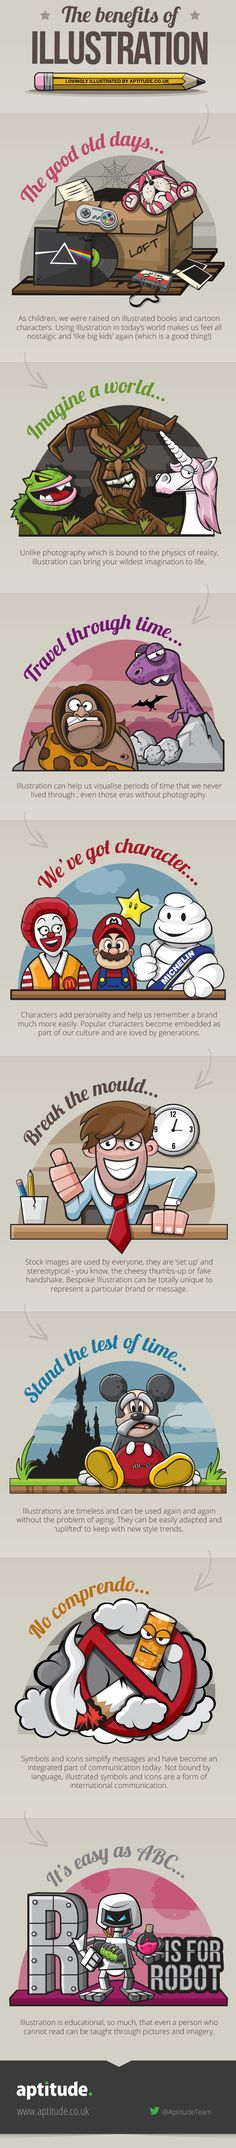 The Importance of Illustration Infographic